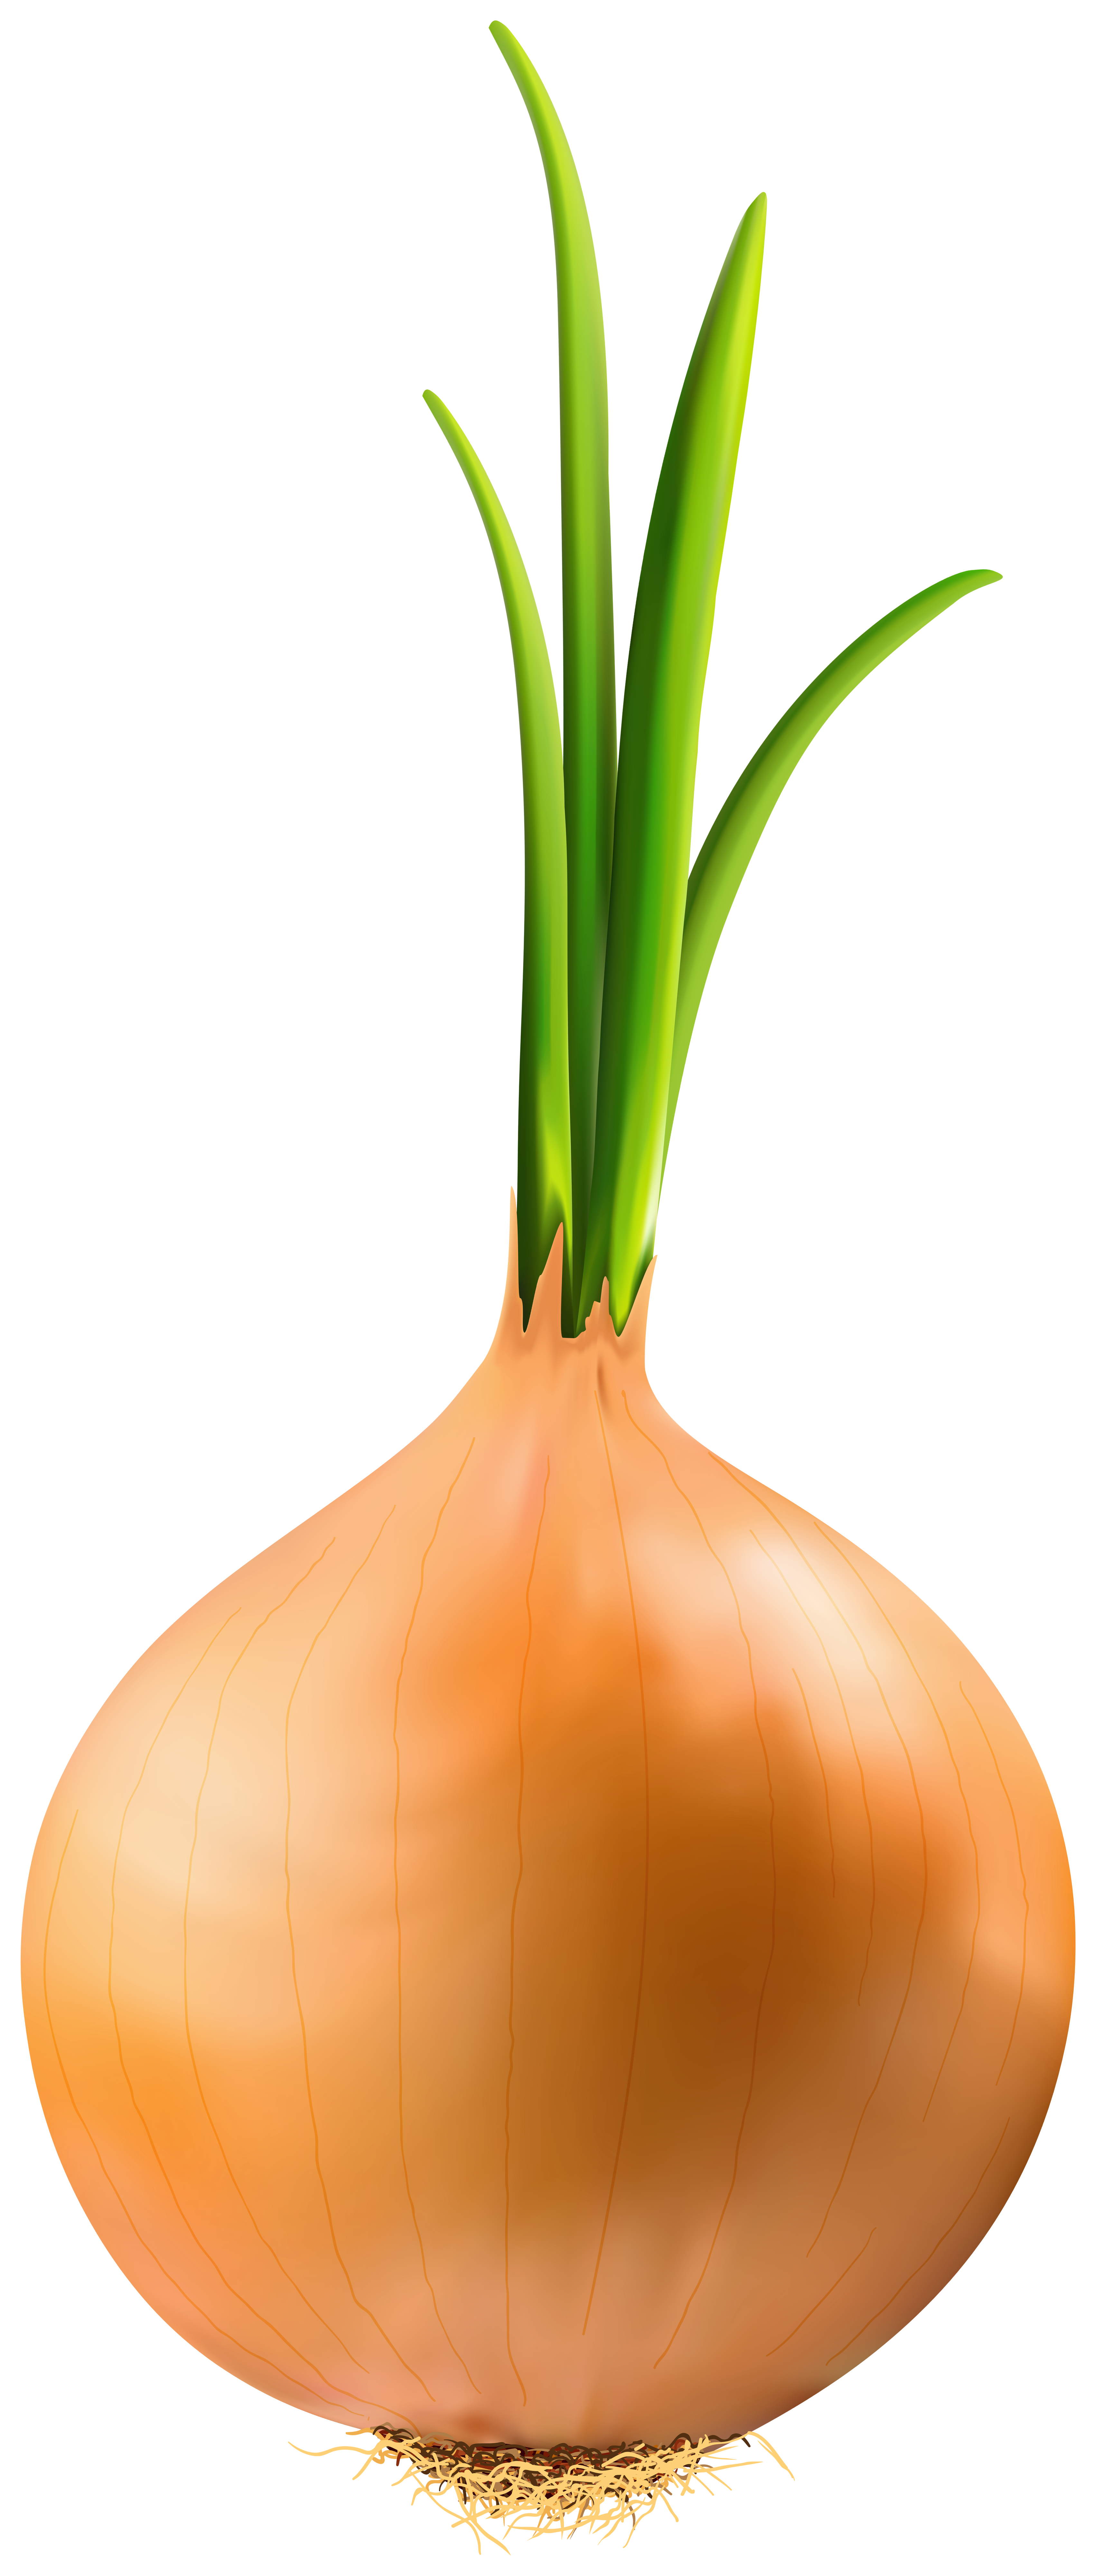 Onion PNG Clipart Image.